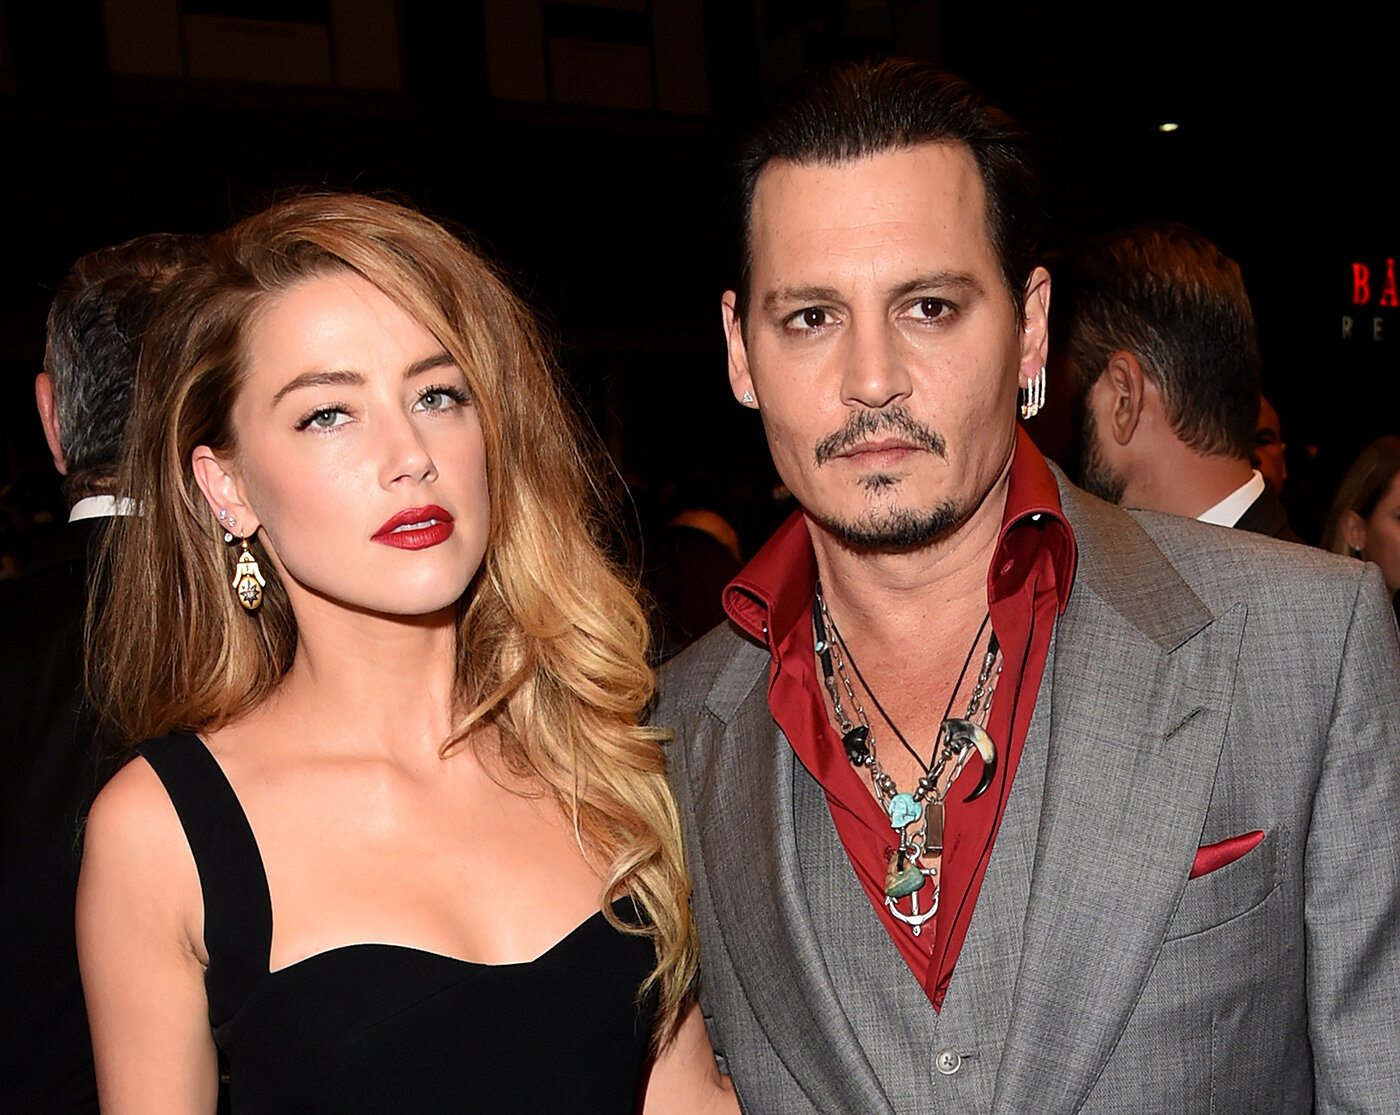 It seems like Johnny Depp has no career after the allegations against him from Amber Heard. Will he ever be able to act in Hollywood again?